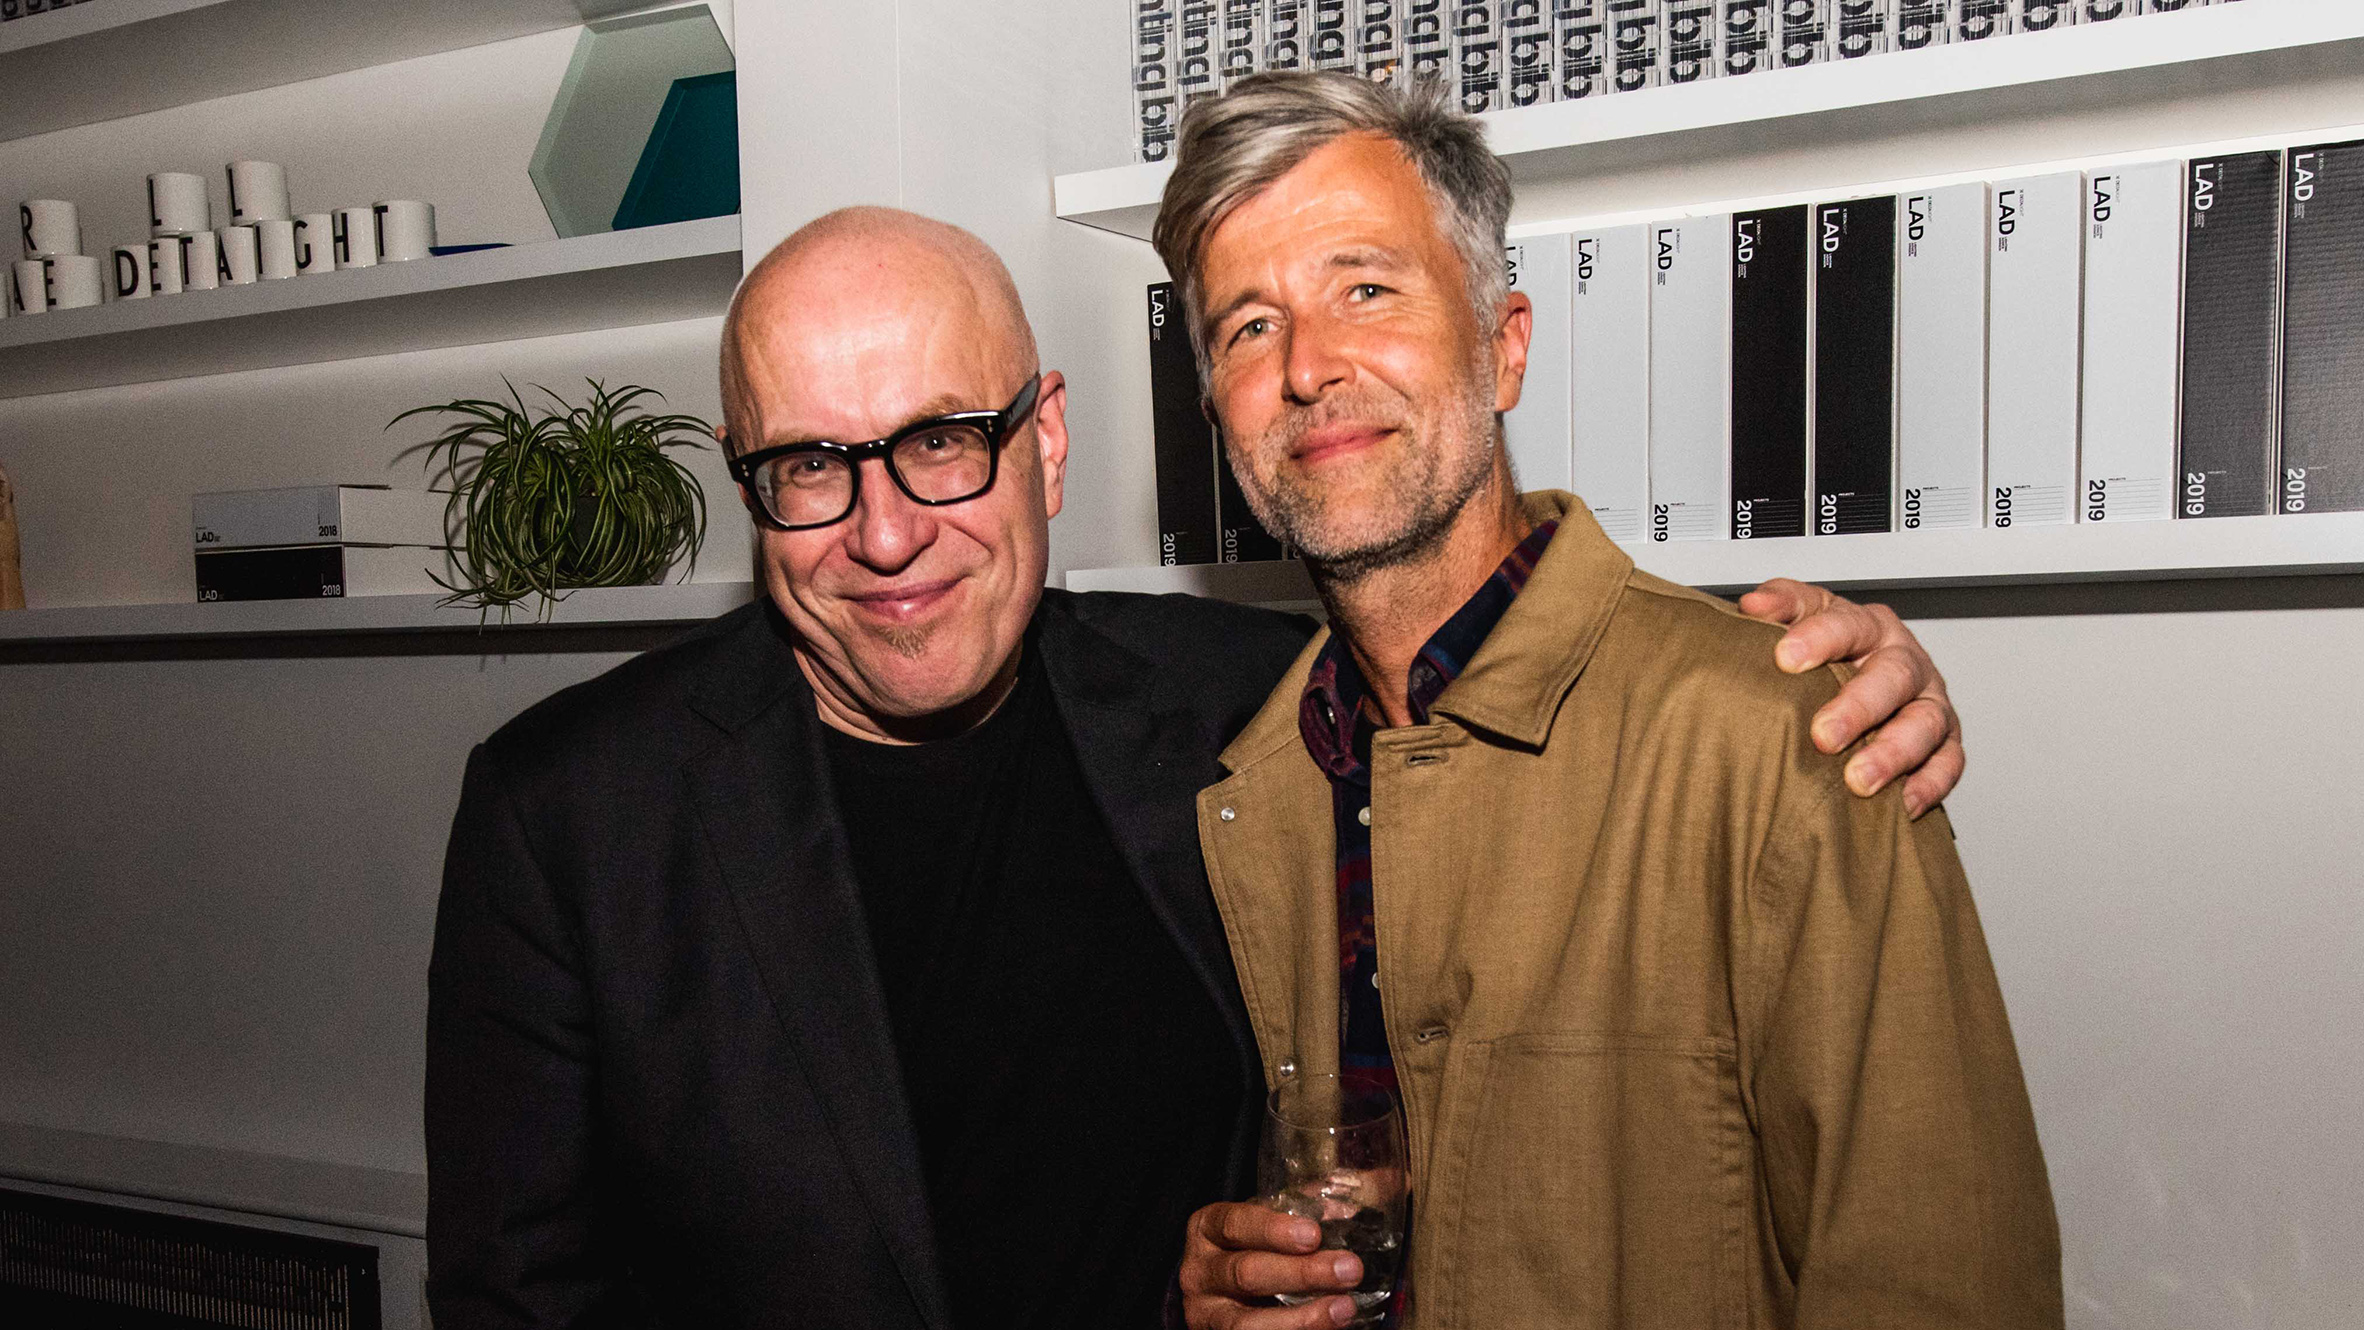 Dezeen Awards 2019 judge Eero Koivisto with Luke Pearson of PearsonLloyd